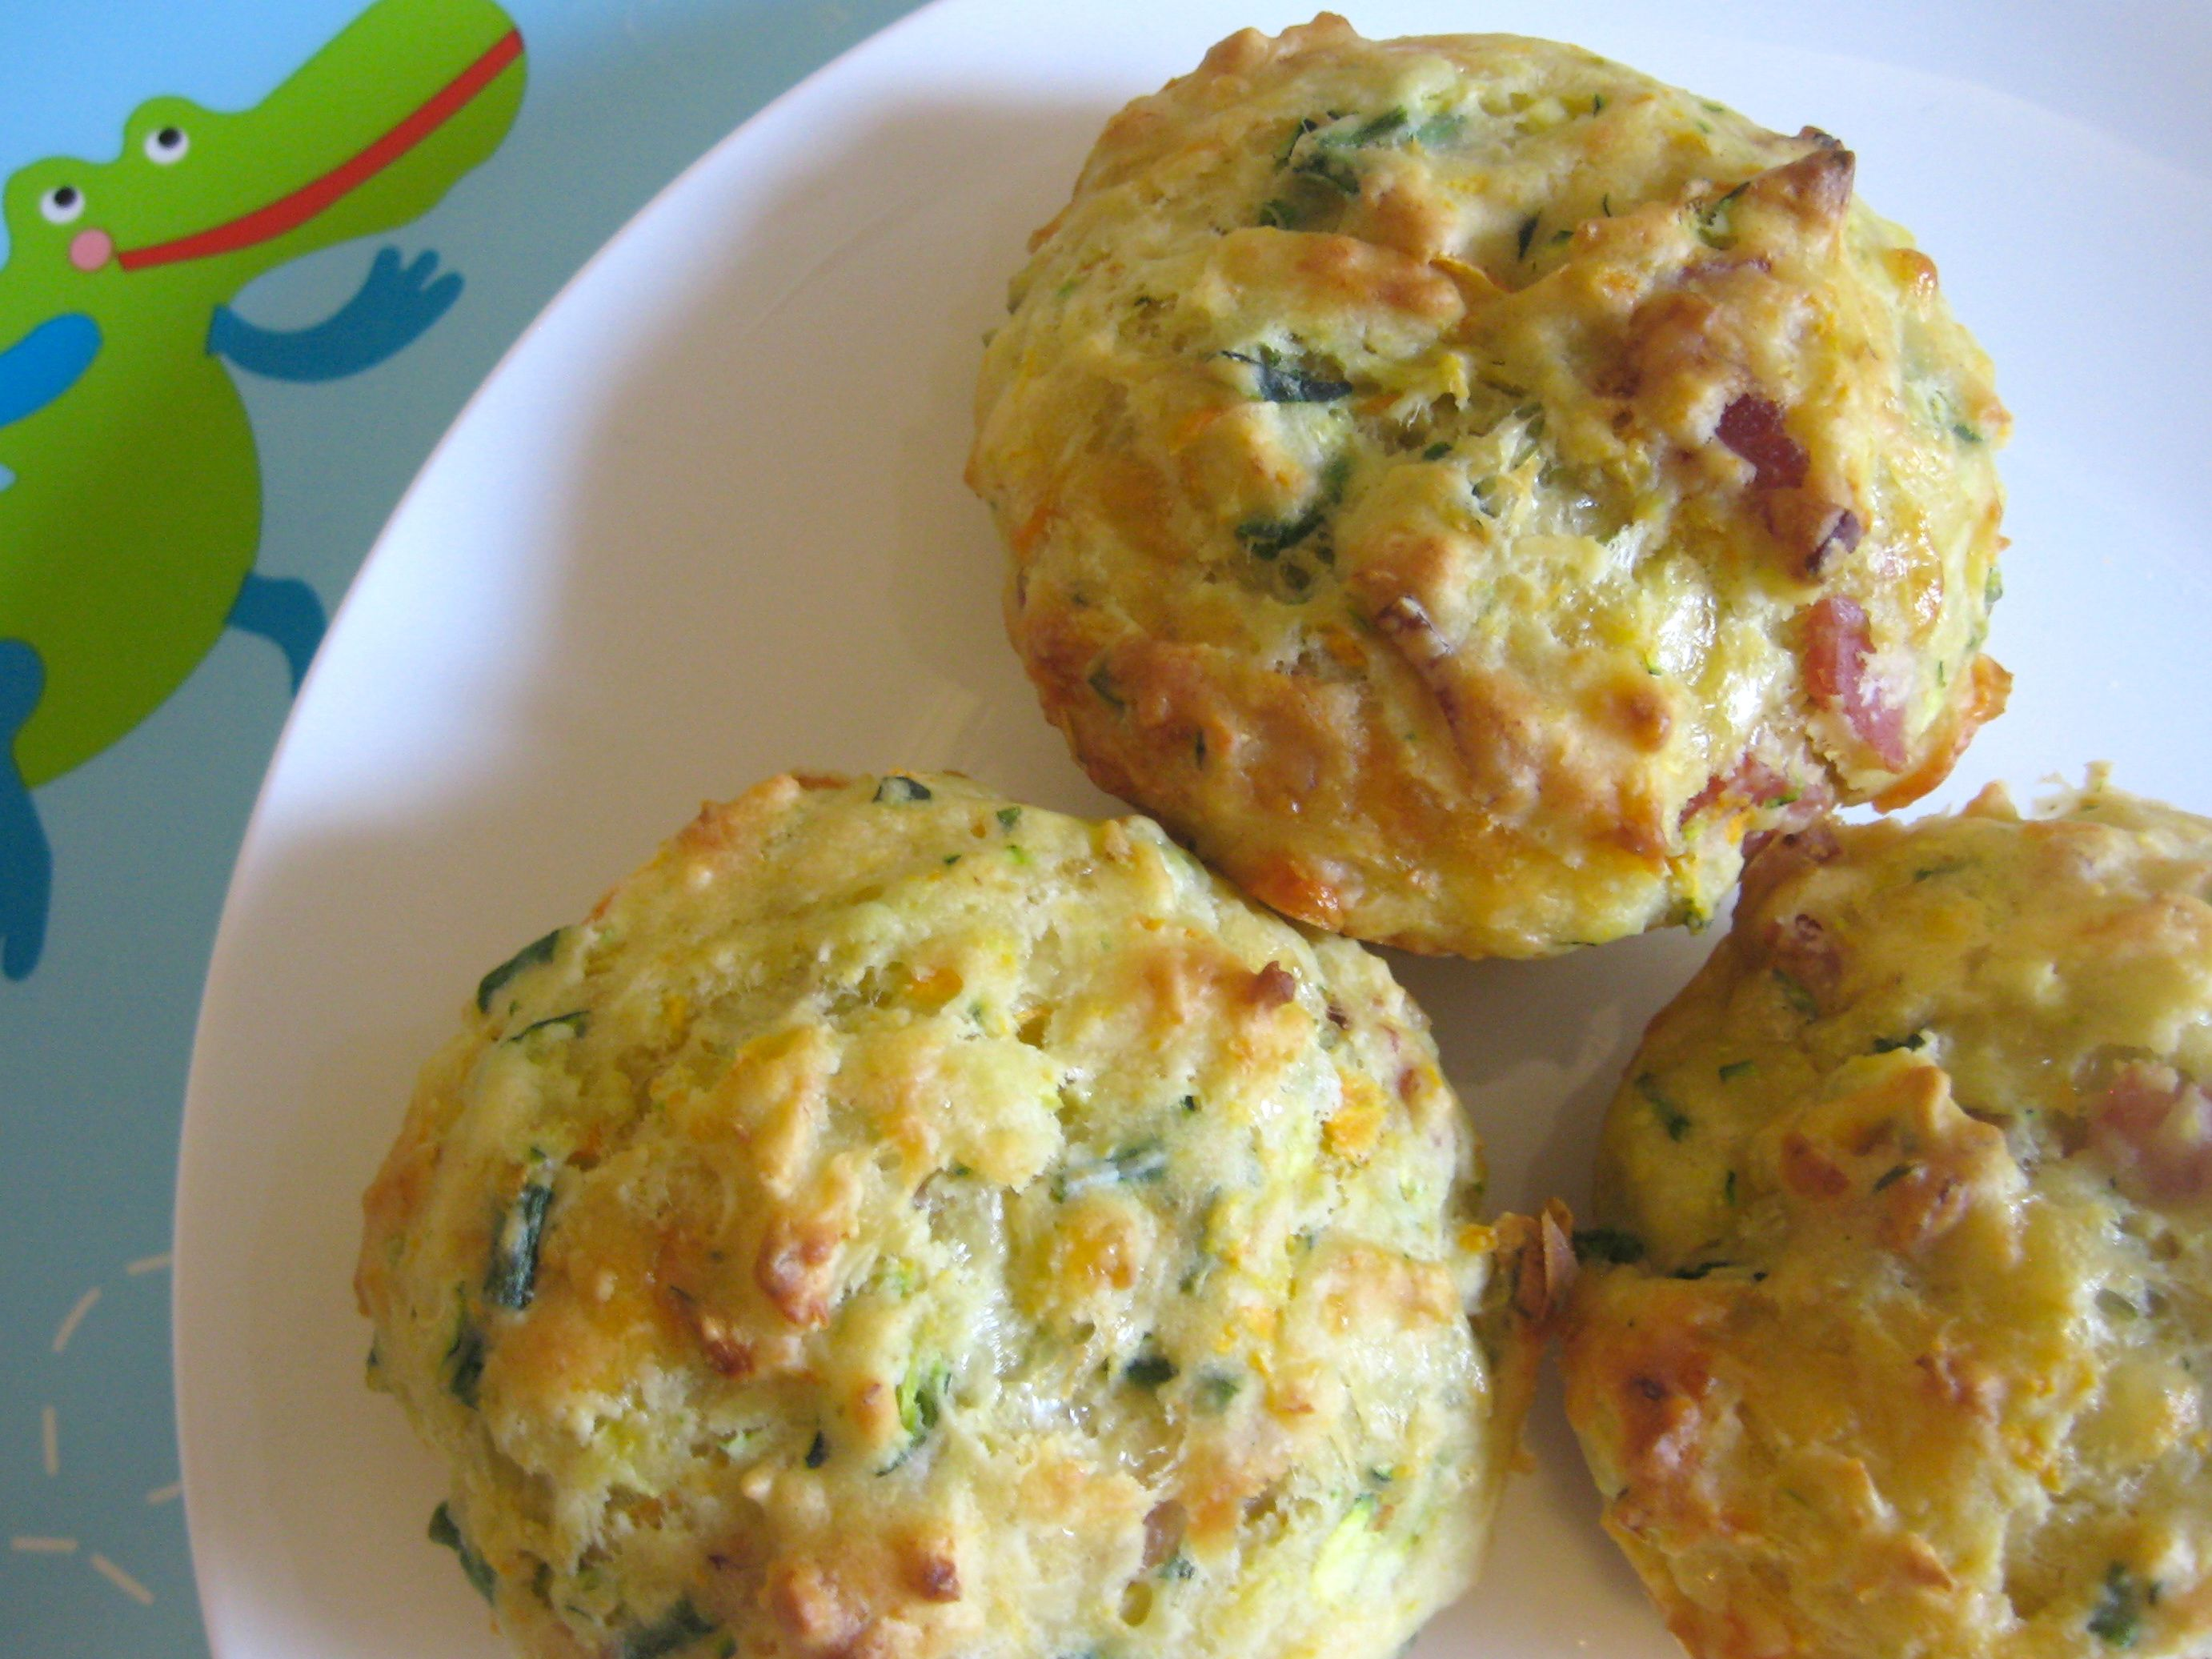 I have been baking these muffins regularly for my fussy boy. They're super easy to make, full of protein and the best bit...they contain a cup full of vegies. Here's the recipe: Savoury Muffins for...